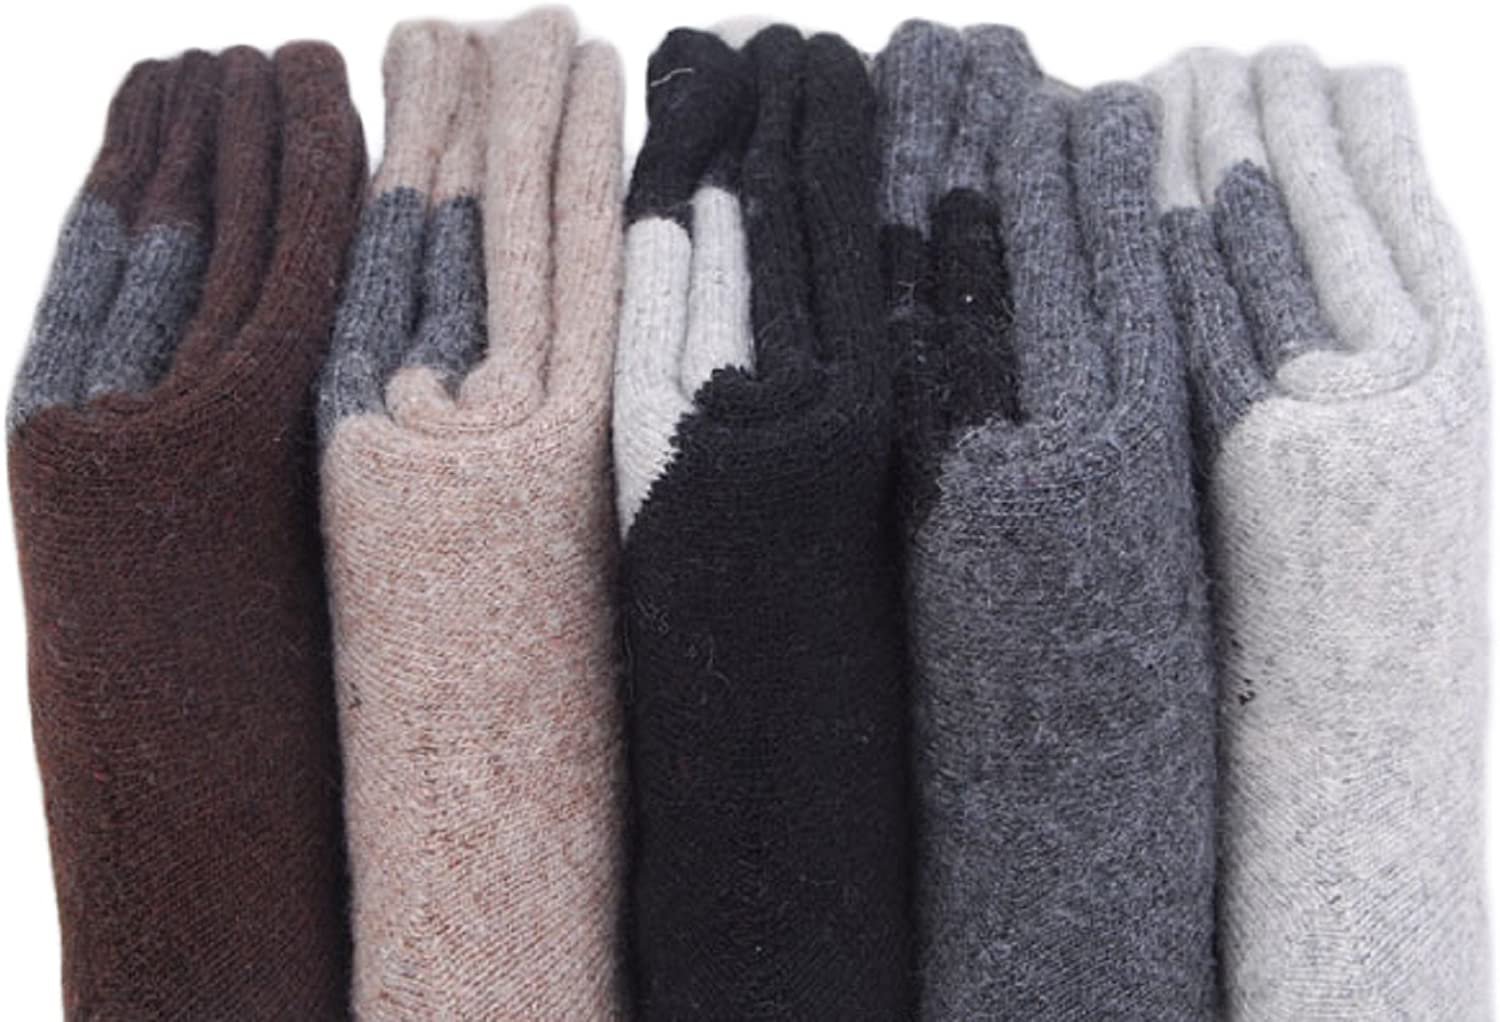 Lian LifeStyle Mens 4 Pairs Pack Extra Thick Cashmere Wool Socks Diamond Size 7-10